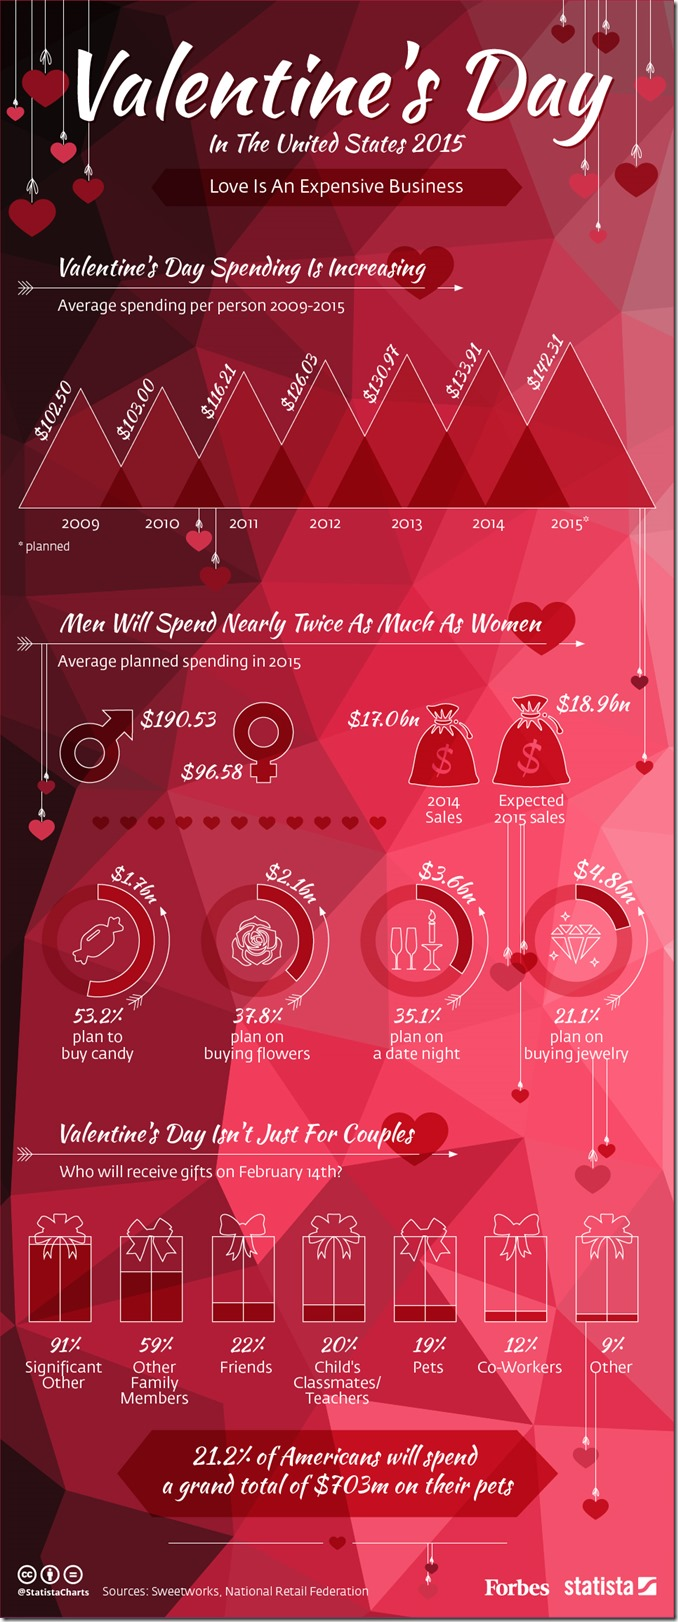 chartoftheday_3225_Valentine's_Day_In_the_United_States_2015_n